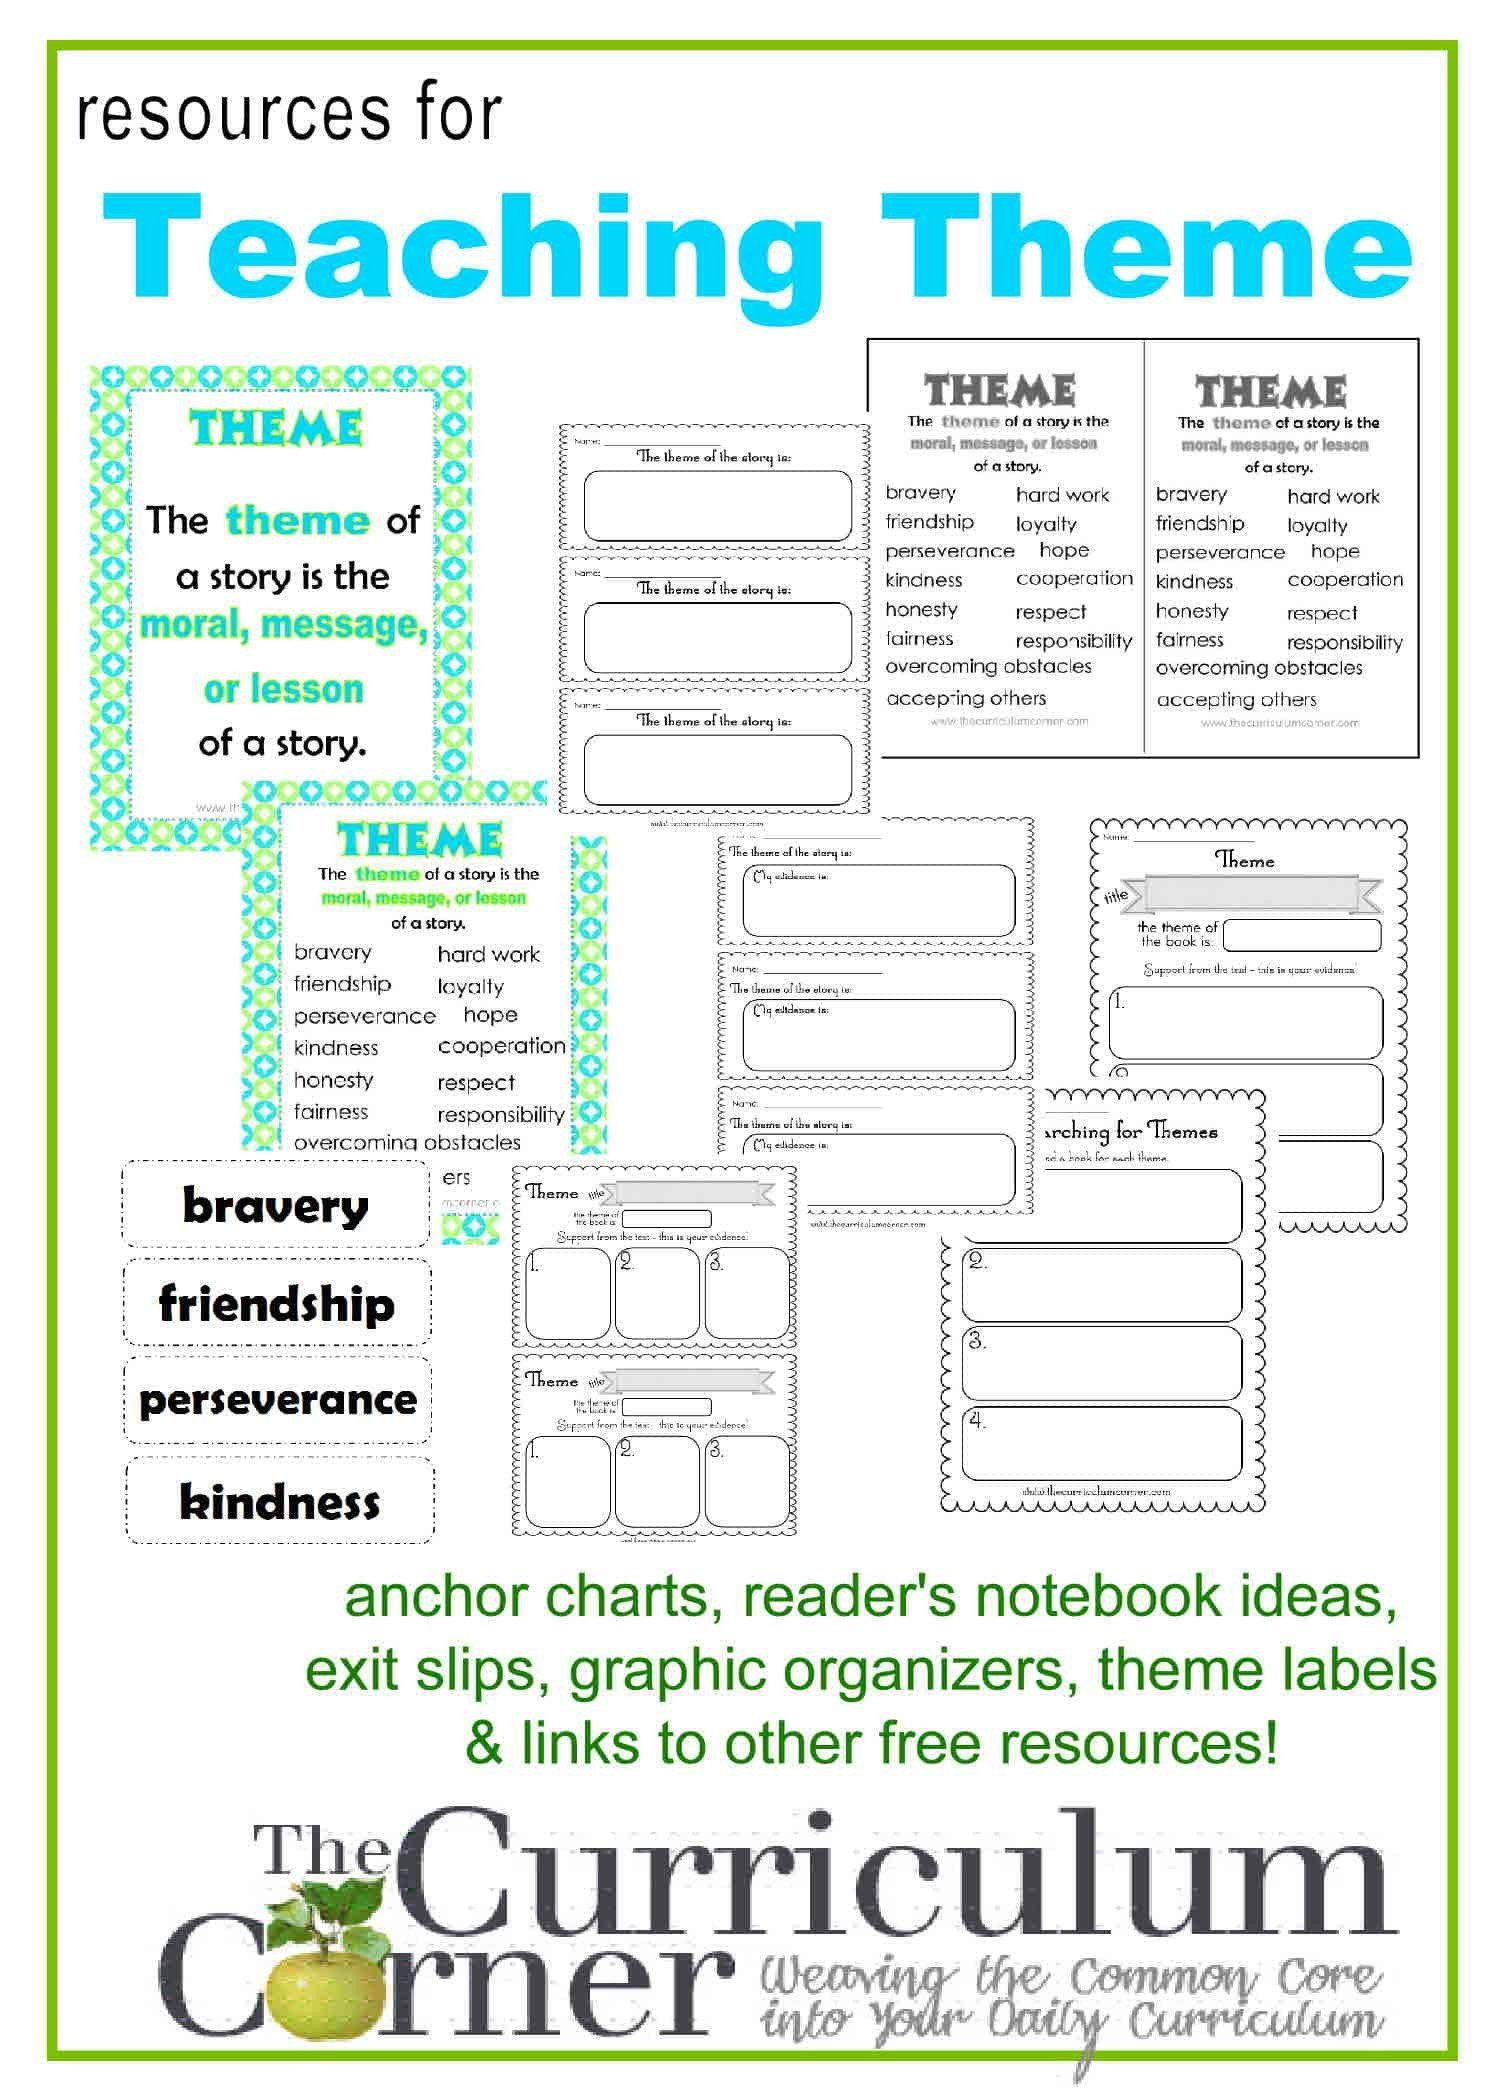 Theme Worksheet 4th Grade Teaching Theme In Reading The Curriculum Corner 123 In 2020 Teaching Themes Reading Themes Teaching